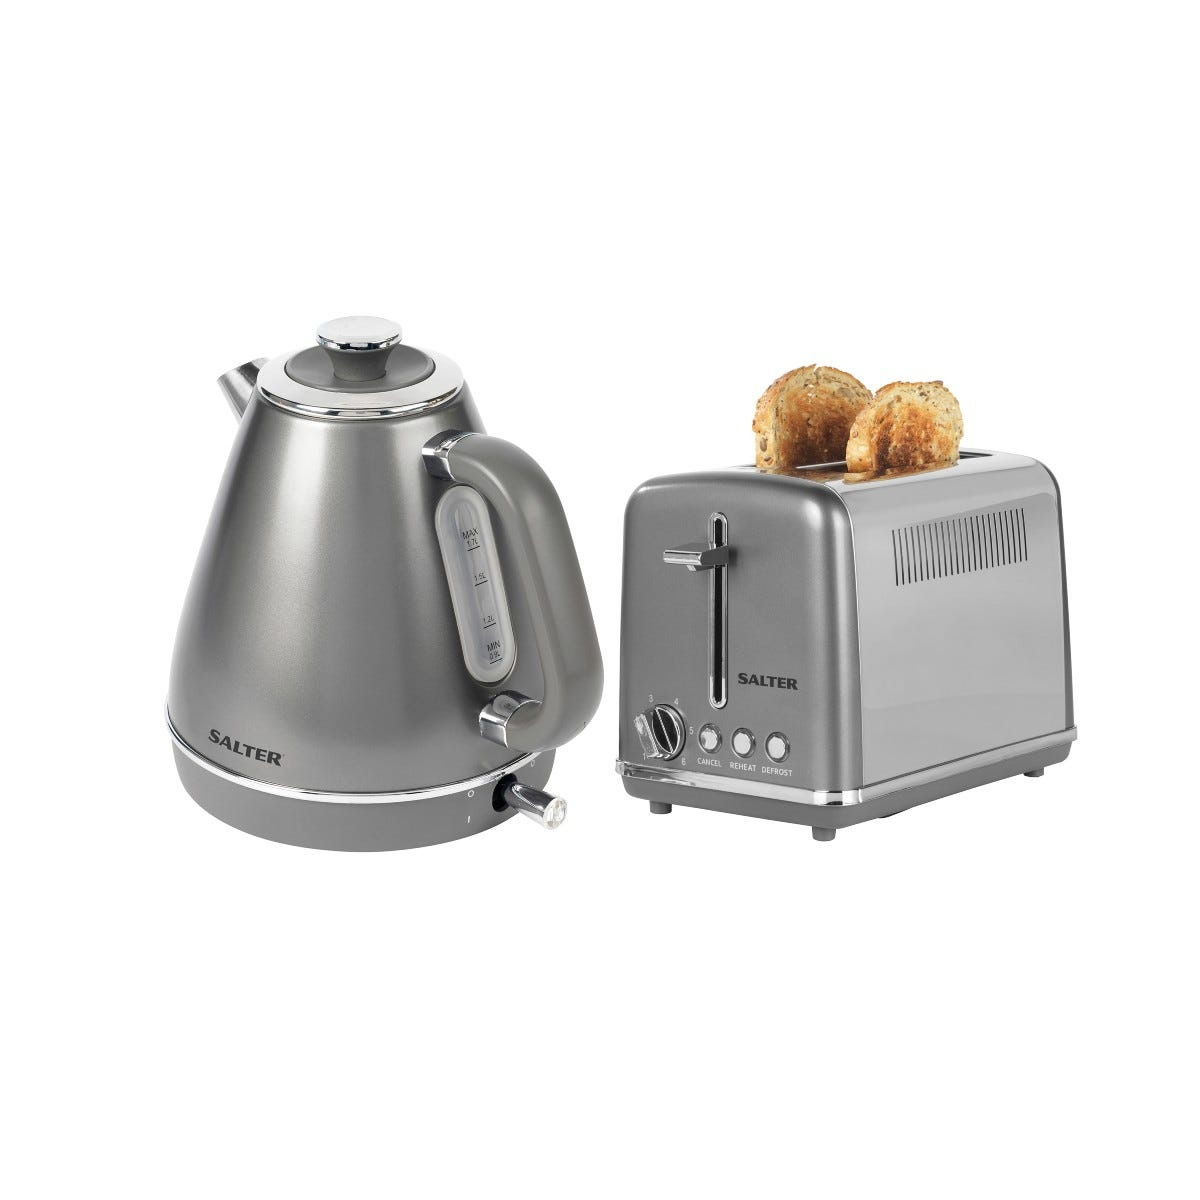 Salter COMBO-6867 Cosmos 1.7L Kettle and 2-Slice Toaster - Gunmetal Grey/Silver